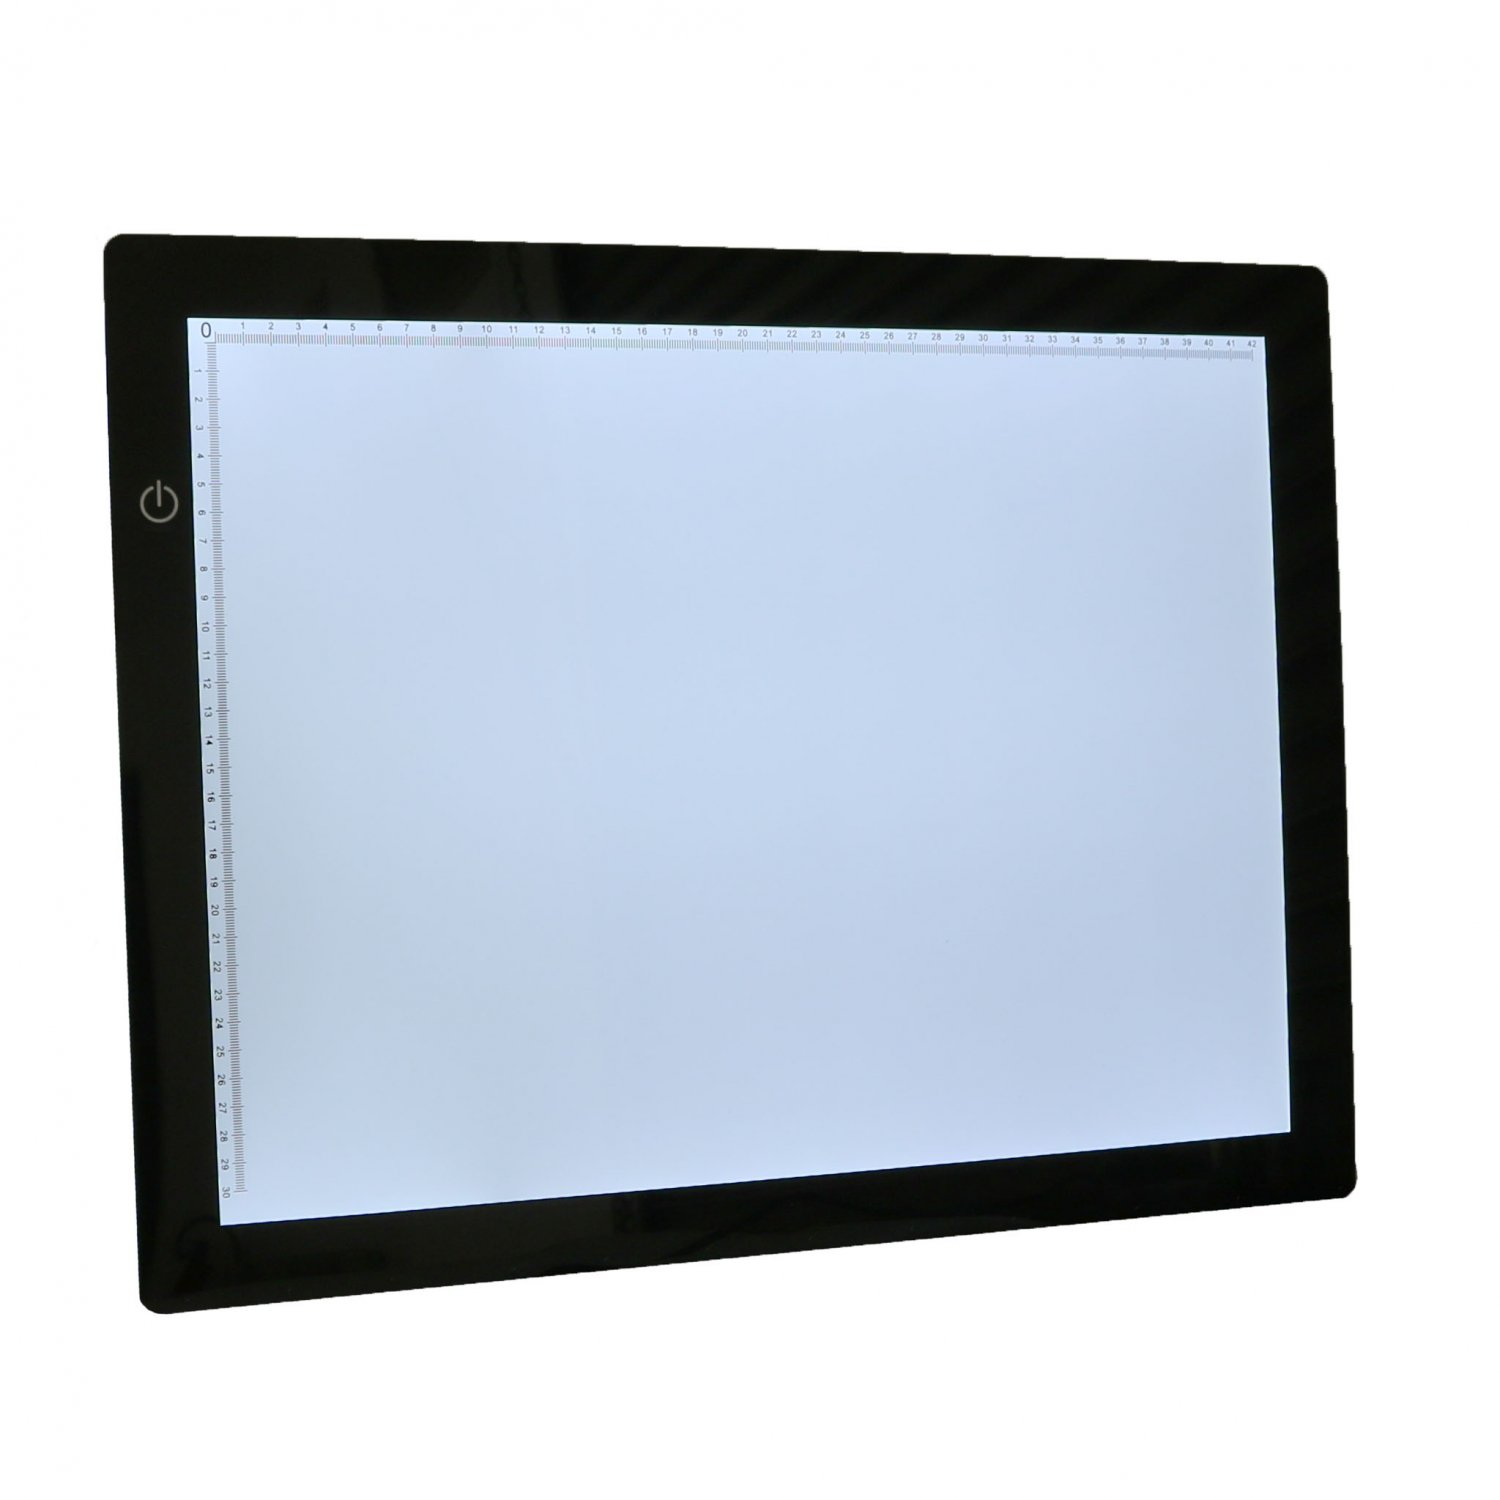 A3 Light Box Drawing Board Tracing Copy Adjustable Brightness